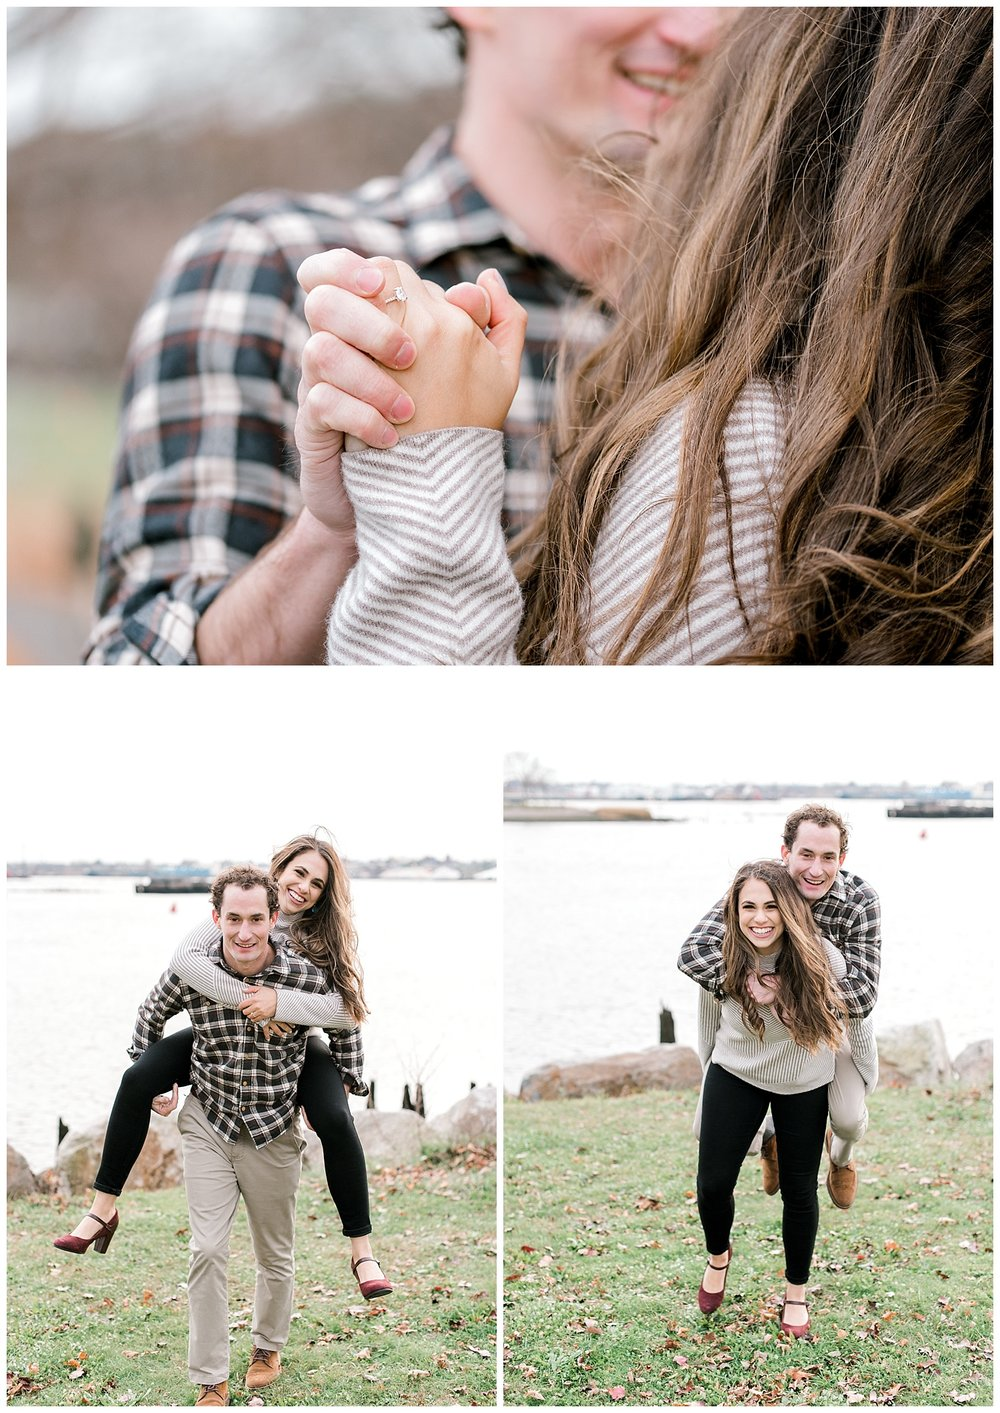 east-side-providence-fall-engagement-session-photos-12.jpg